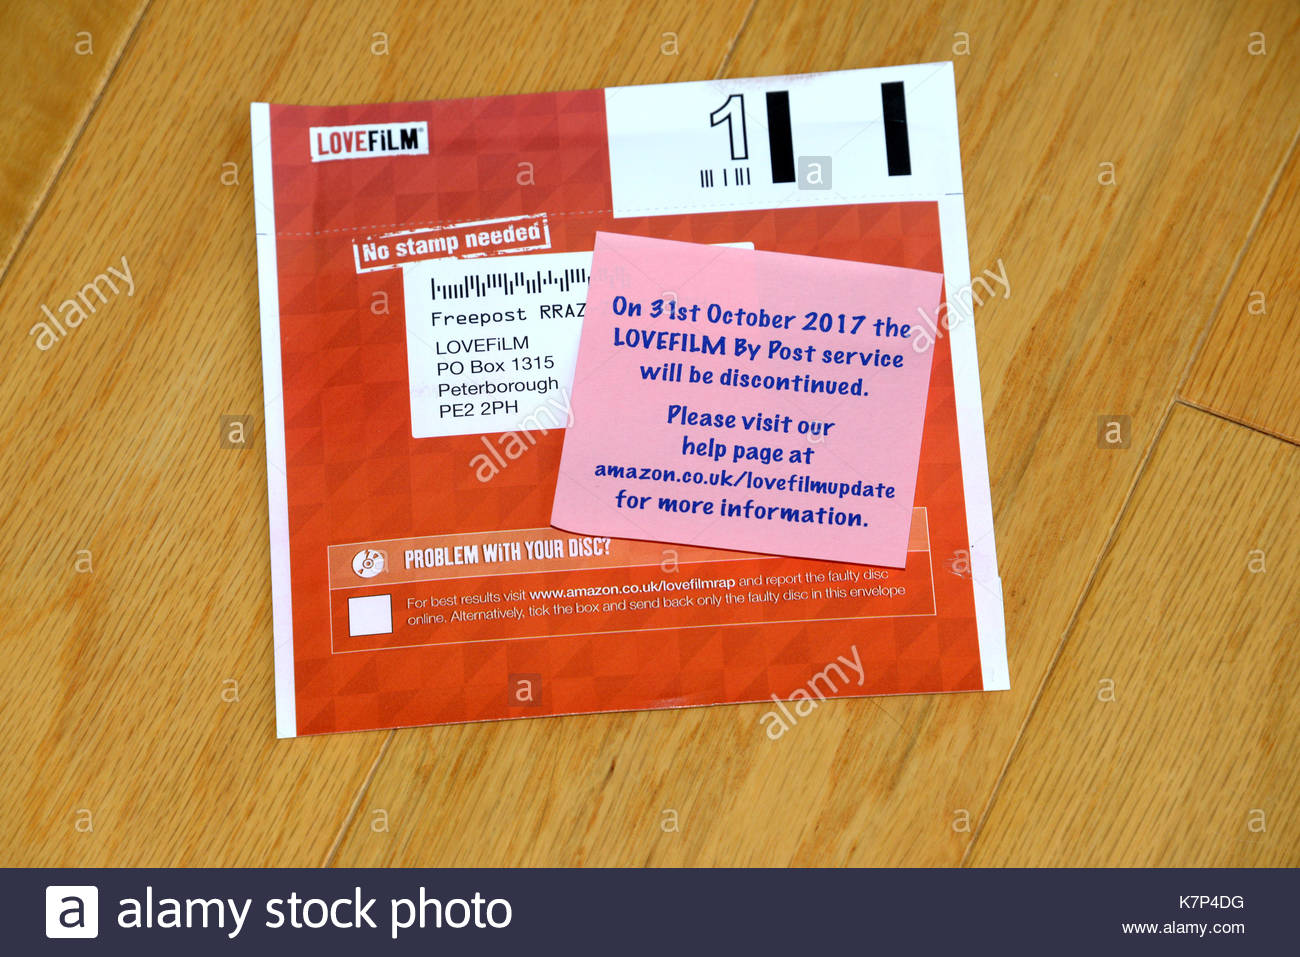 Amazon Lovefilm service ends on 31st October 2017 - The DVD and Blu-ray disc rental by post was very popular with many disapointed - Stock Image